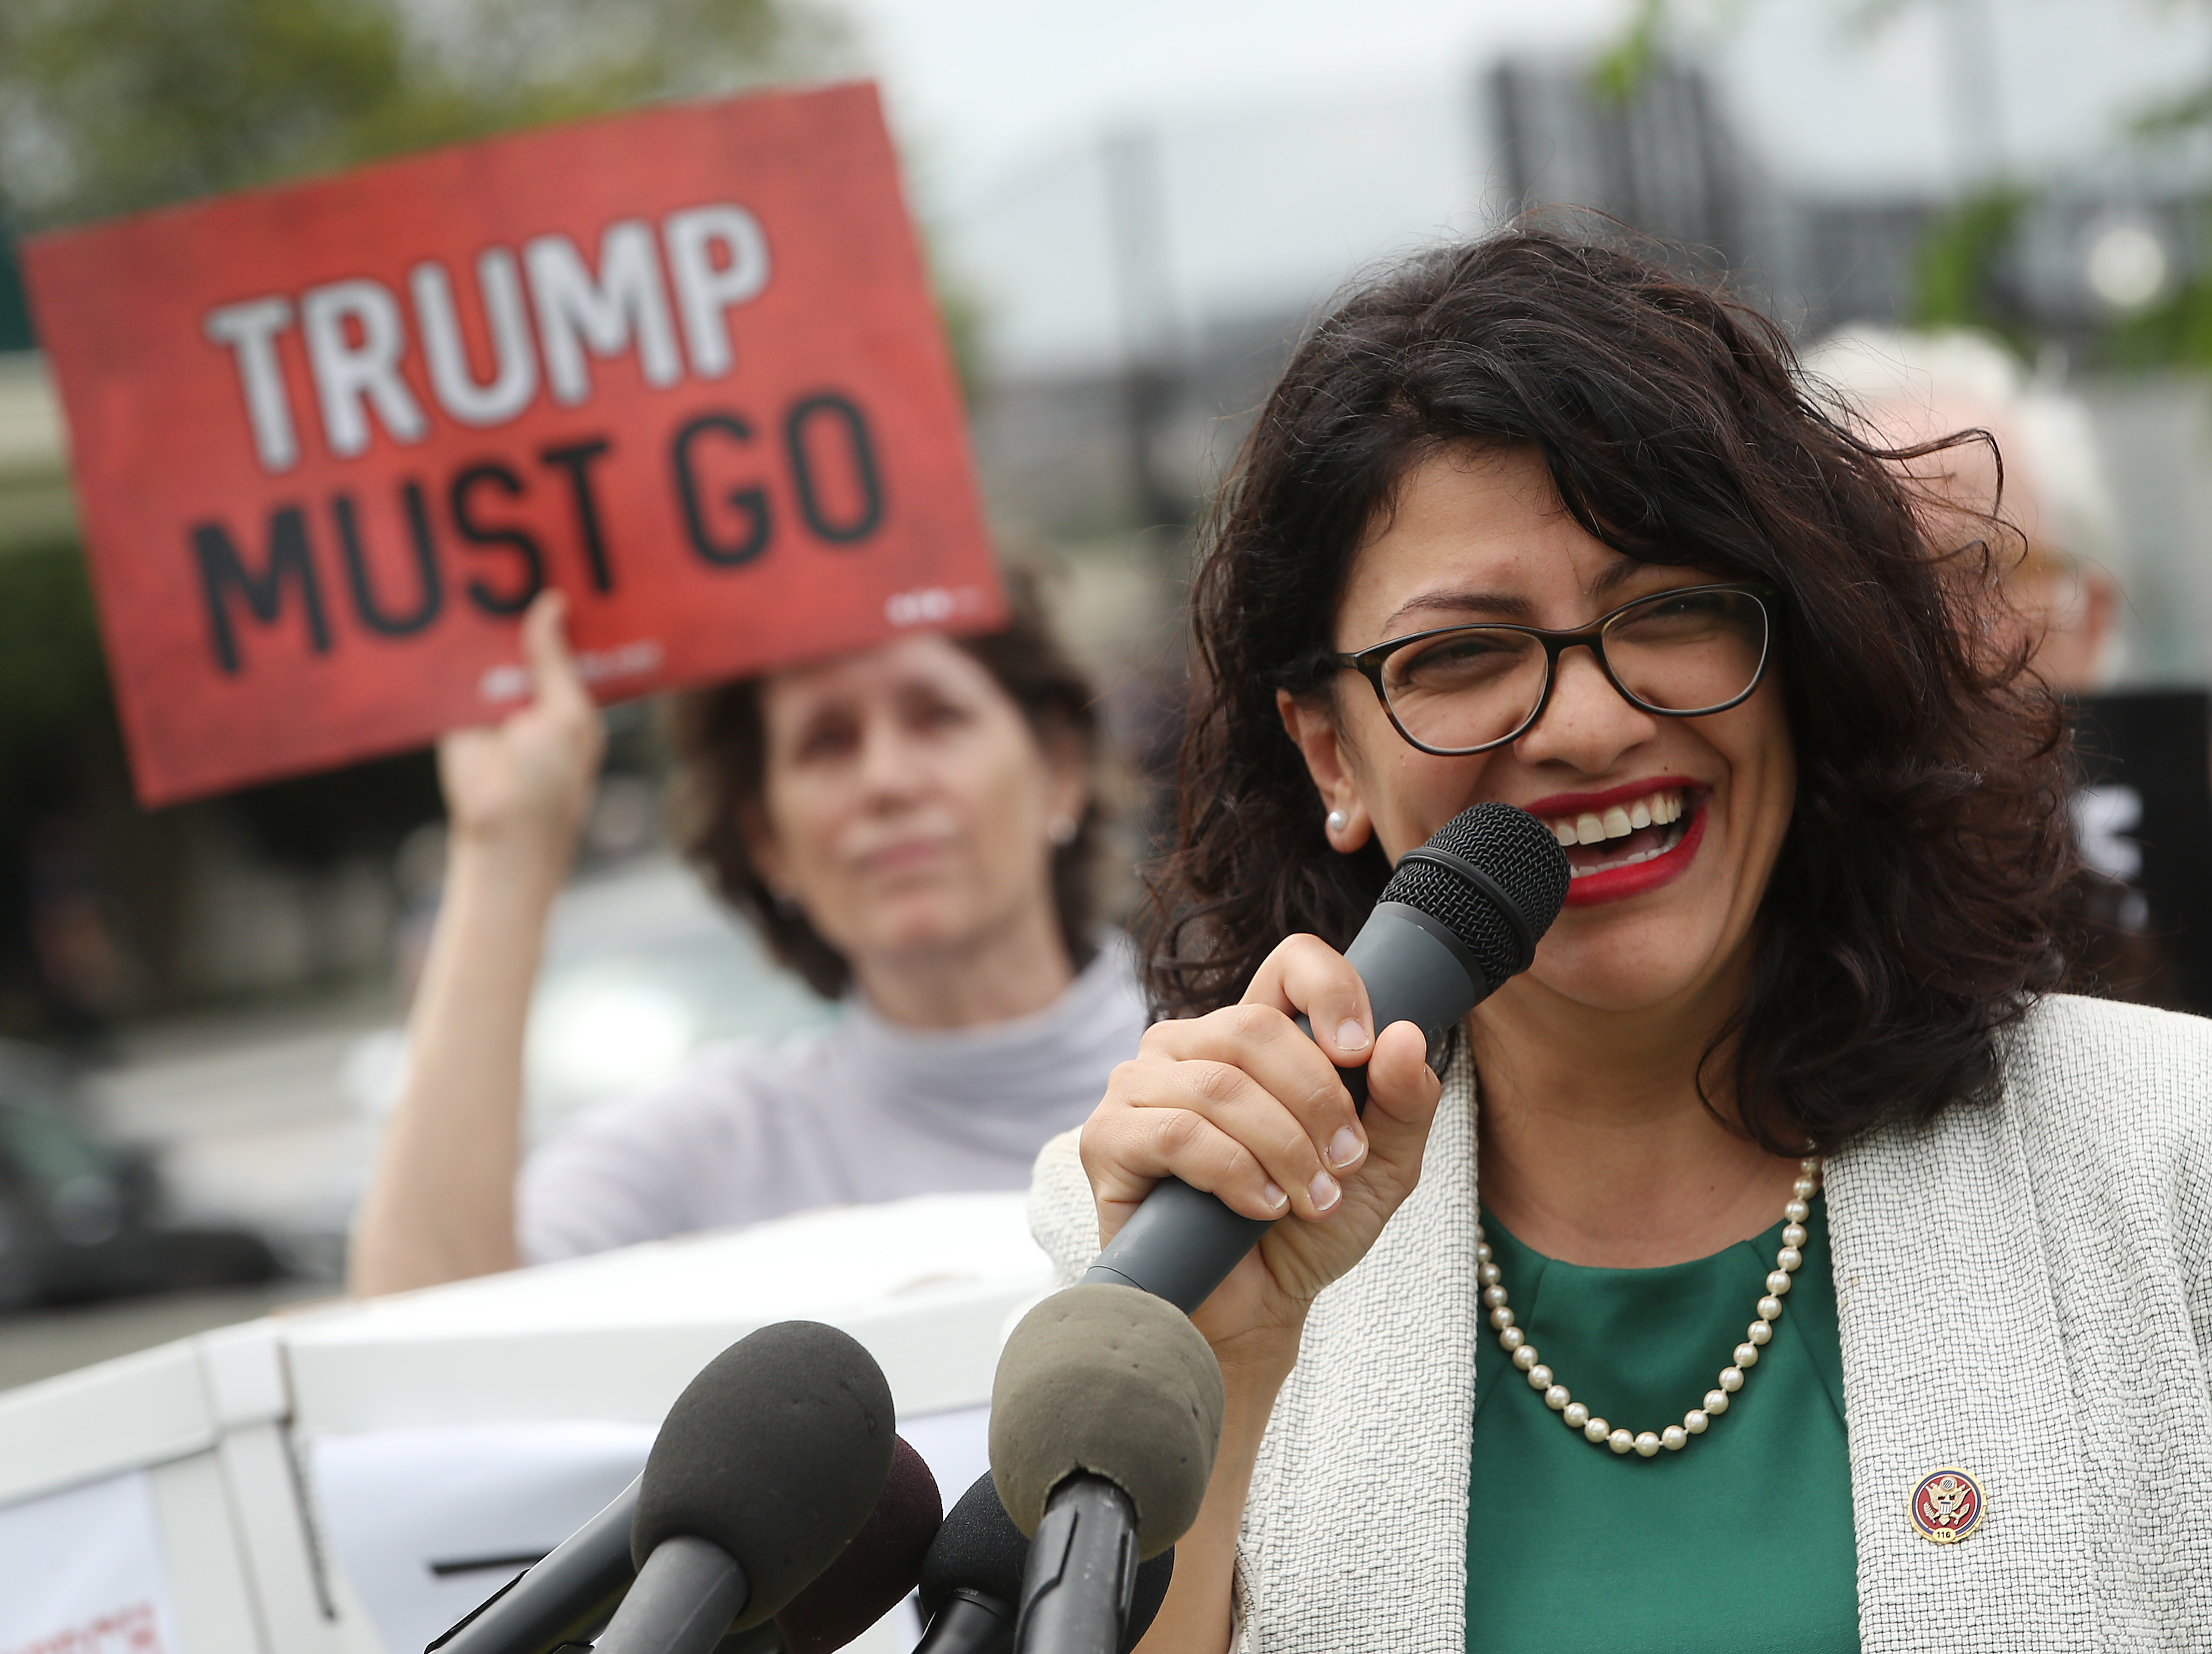 WASHINGTON, DC - MAY 09: Rep. Rashida Tlaib (D-MI) speaks during an event with activist groups to deliver over ten million petition signatures to Congress urging the U.S. House of Representatives to start impeachment proceedings against President Donald Trump on Capitol Hill May 9, 2019 in Washington, DC. (Photo by Mark Wilson/Getty Images)